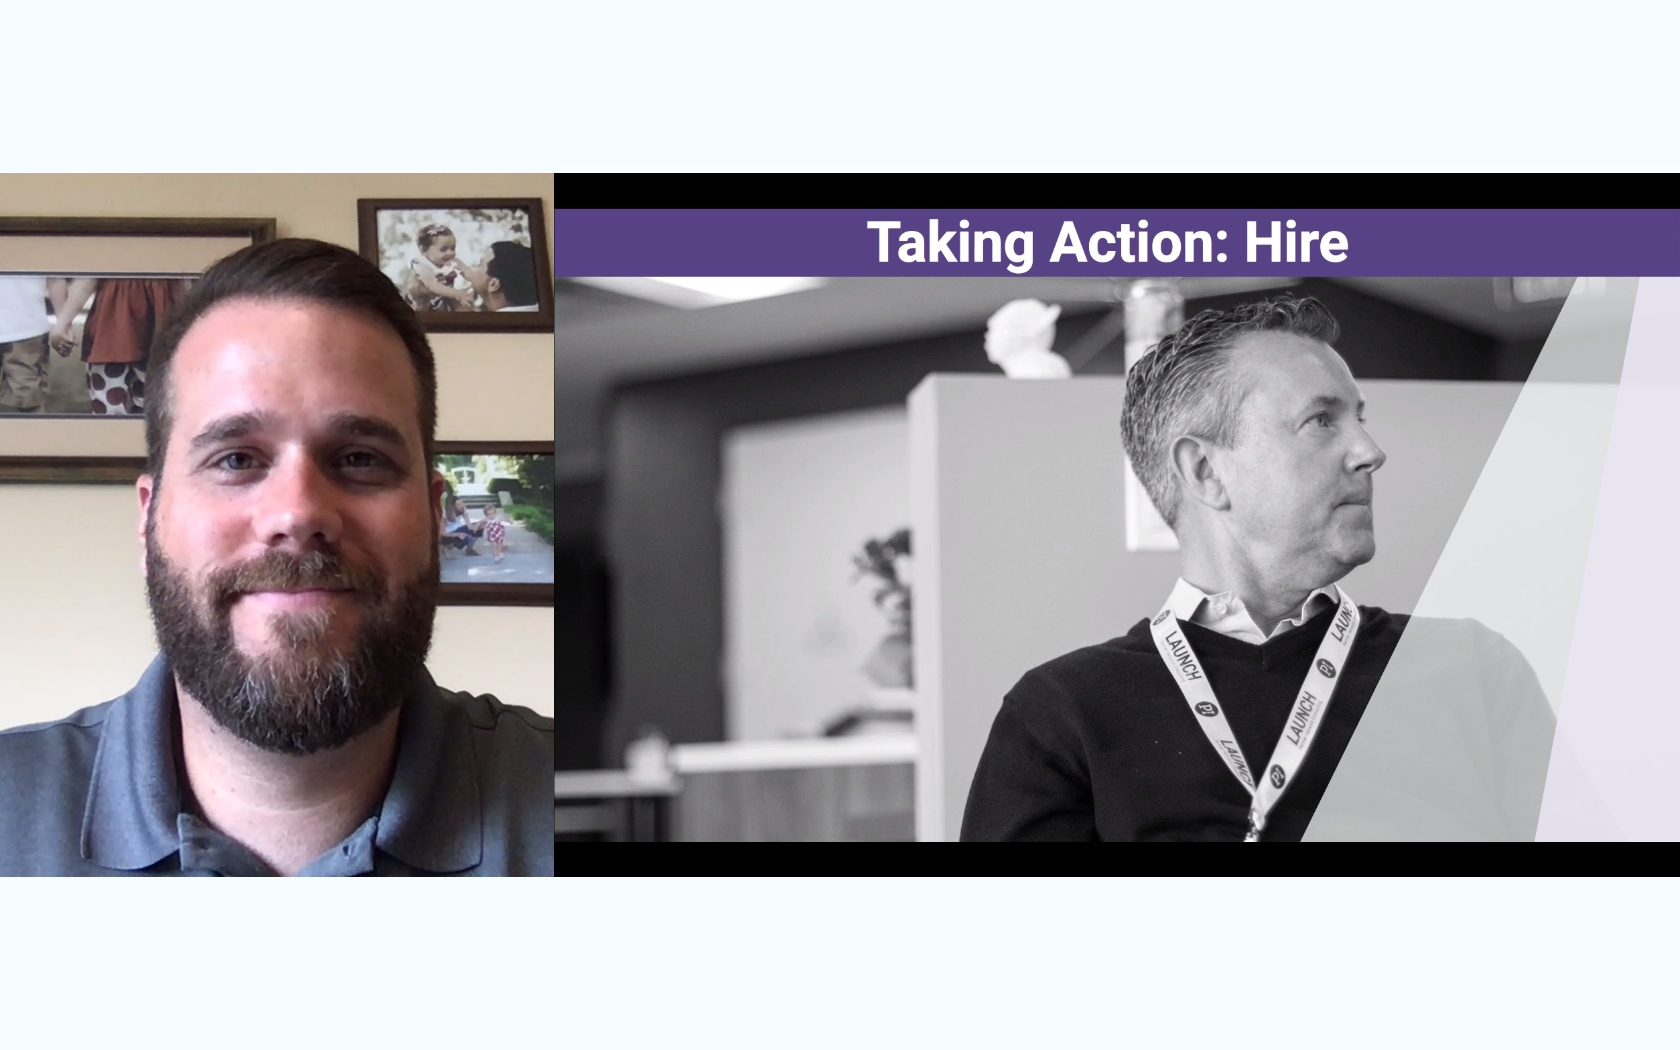 Drive Results with Talent Workshop - 6. Taking Action Hire